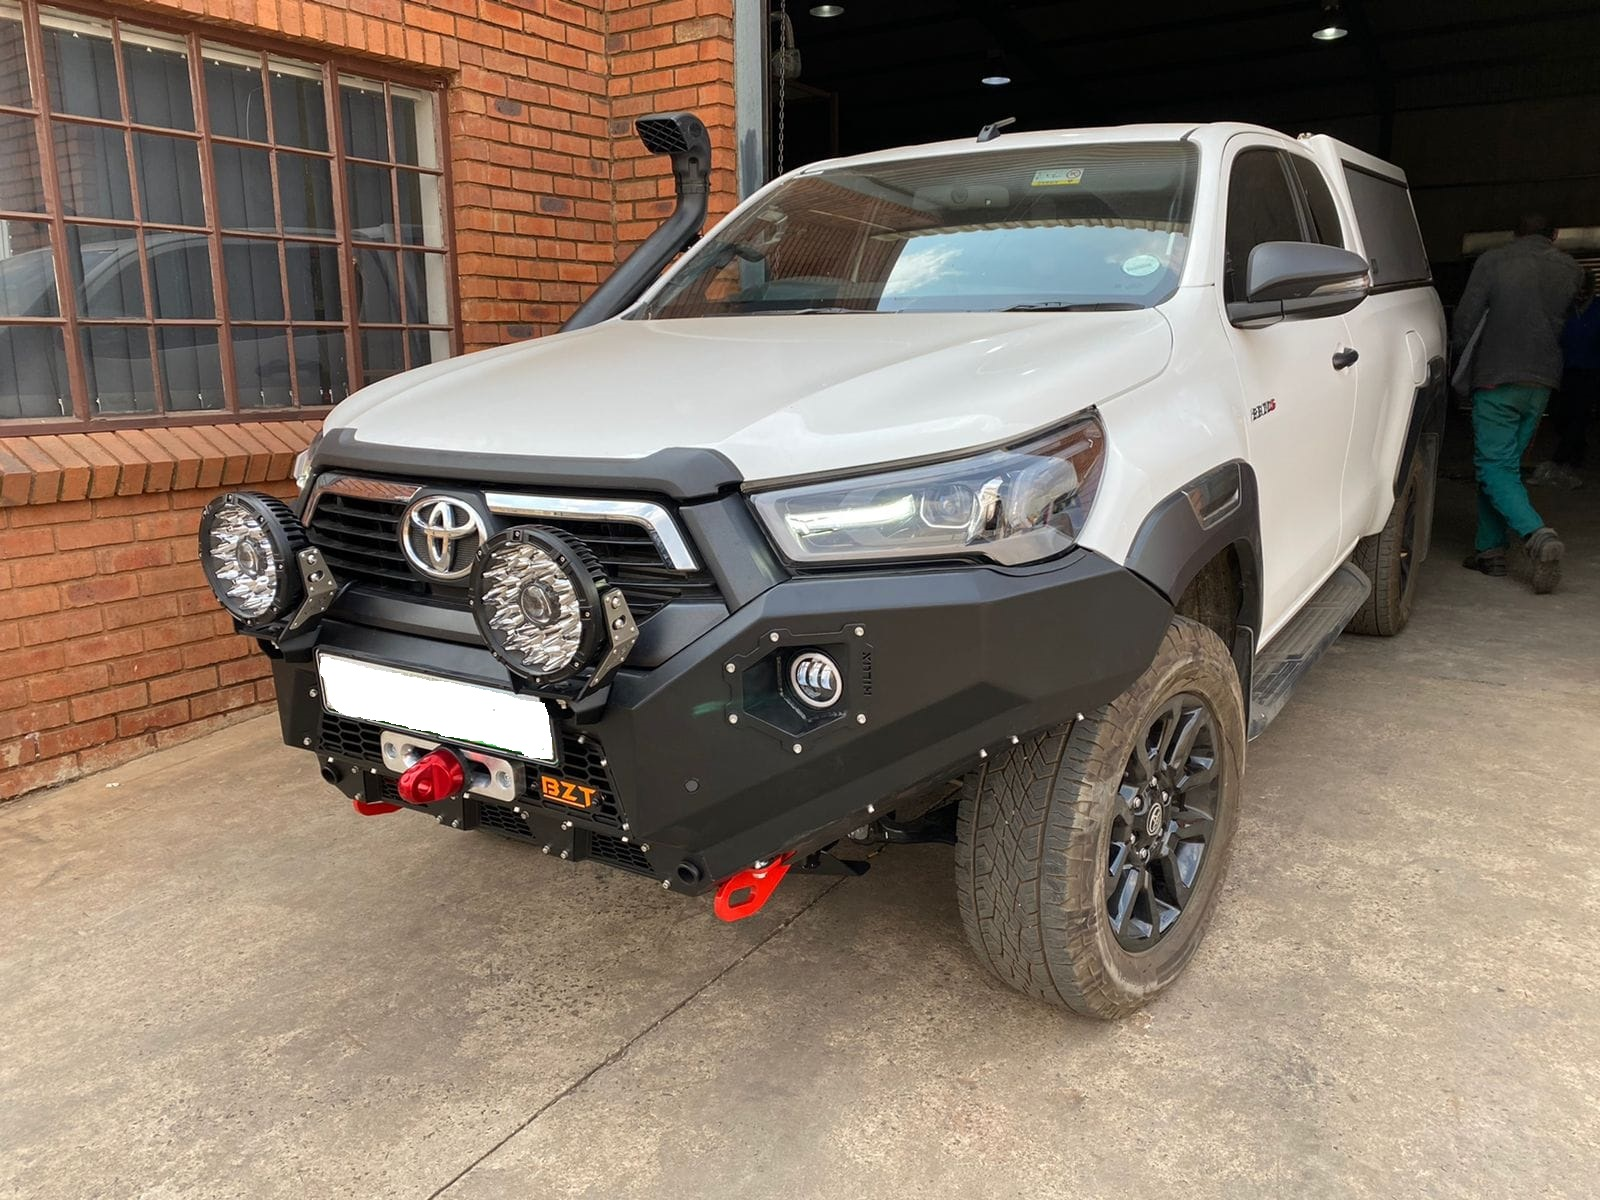 Toyota Hilux Legend 2021 Replacement Steel BZT Bumper With Fog Lights (PDC Friendly & Winch Ready) (Courier Not Included, Please Request Separate Quote)